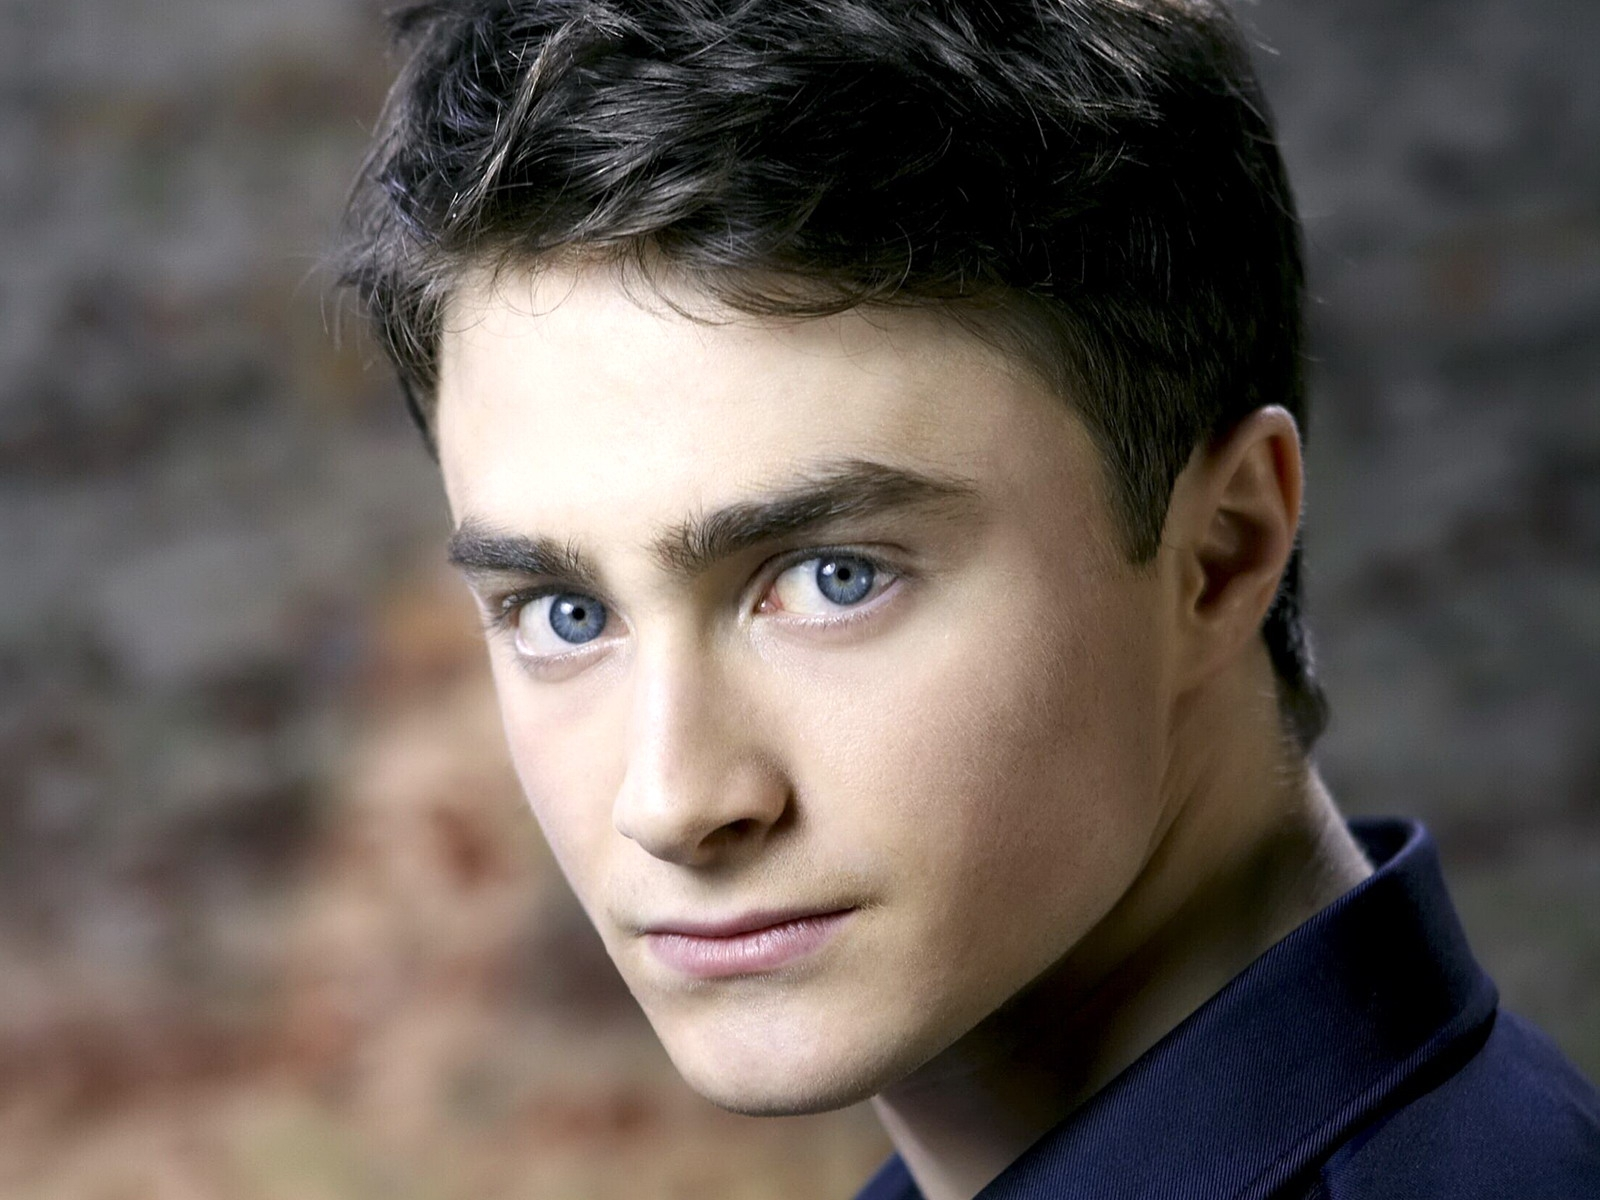 daniel radcliffe face computer wallpaper 55508